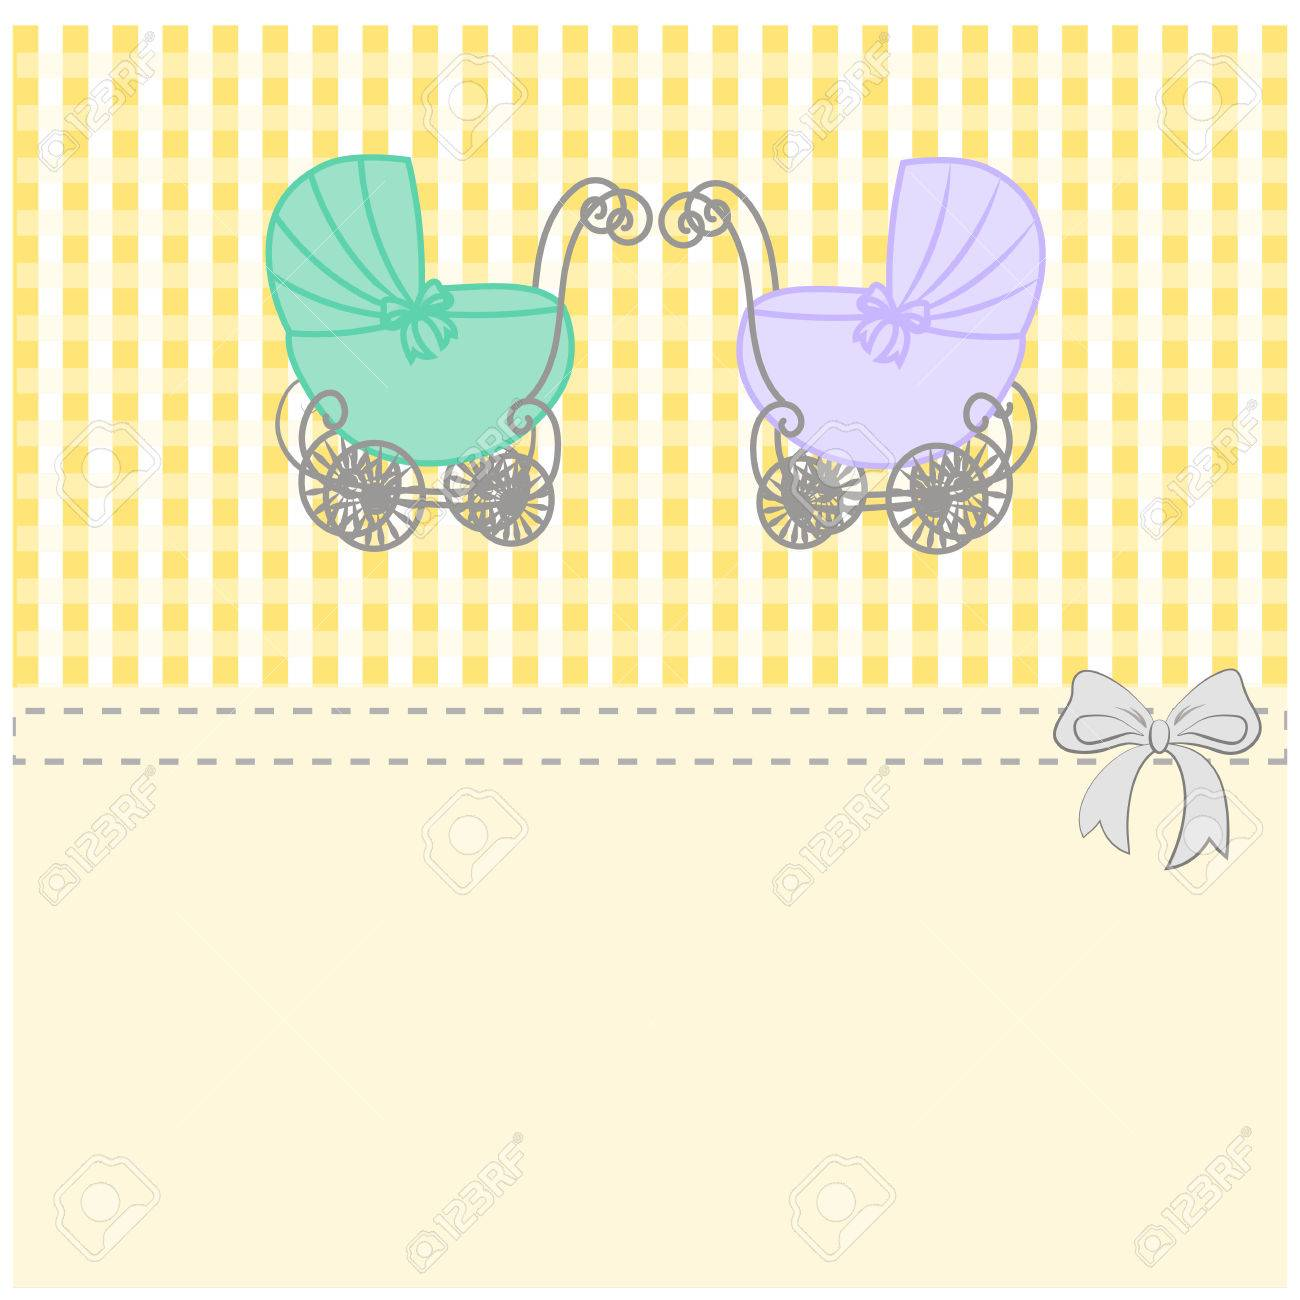 Baby Shower Announcement Twins Vintage Baby Stroller Invitation Or Card Birthday Vector Background Illustration